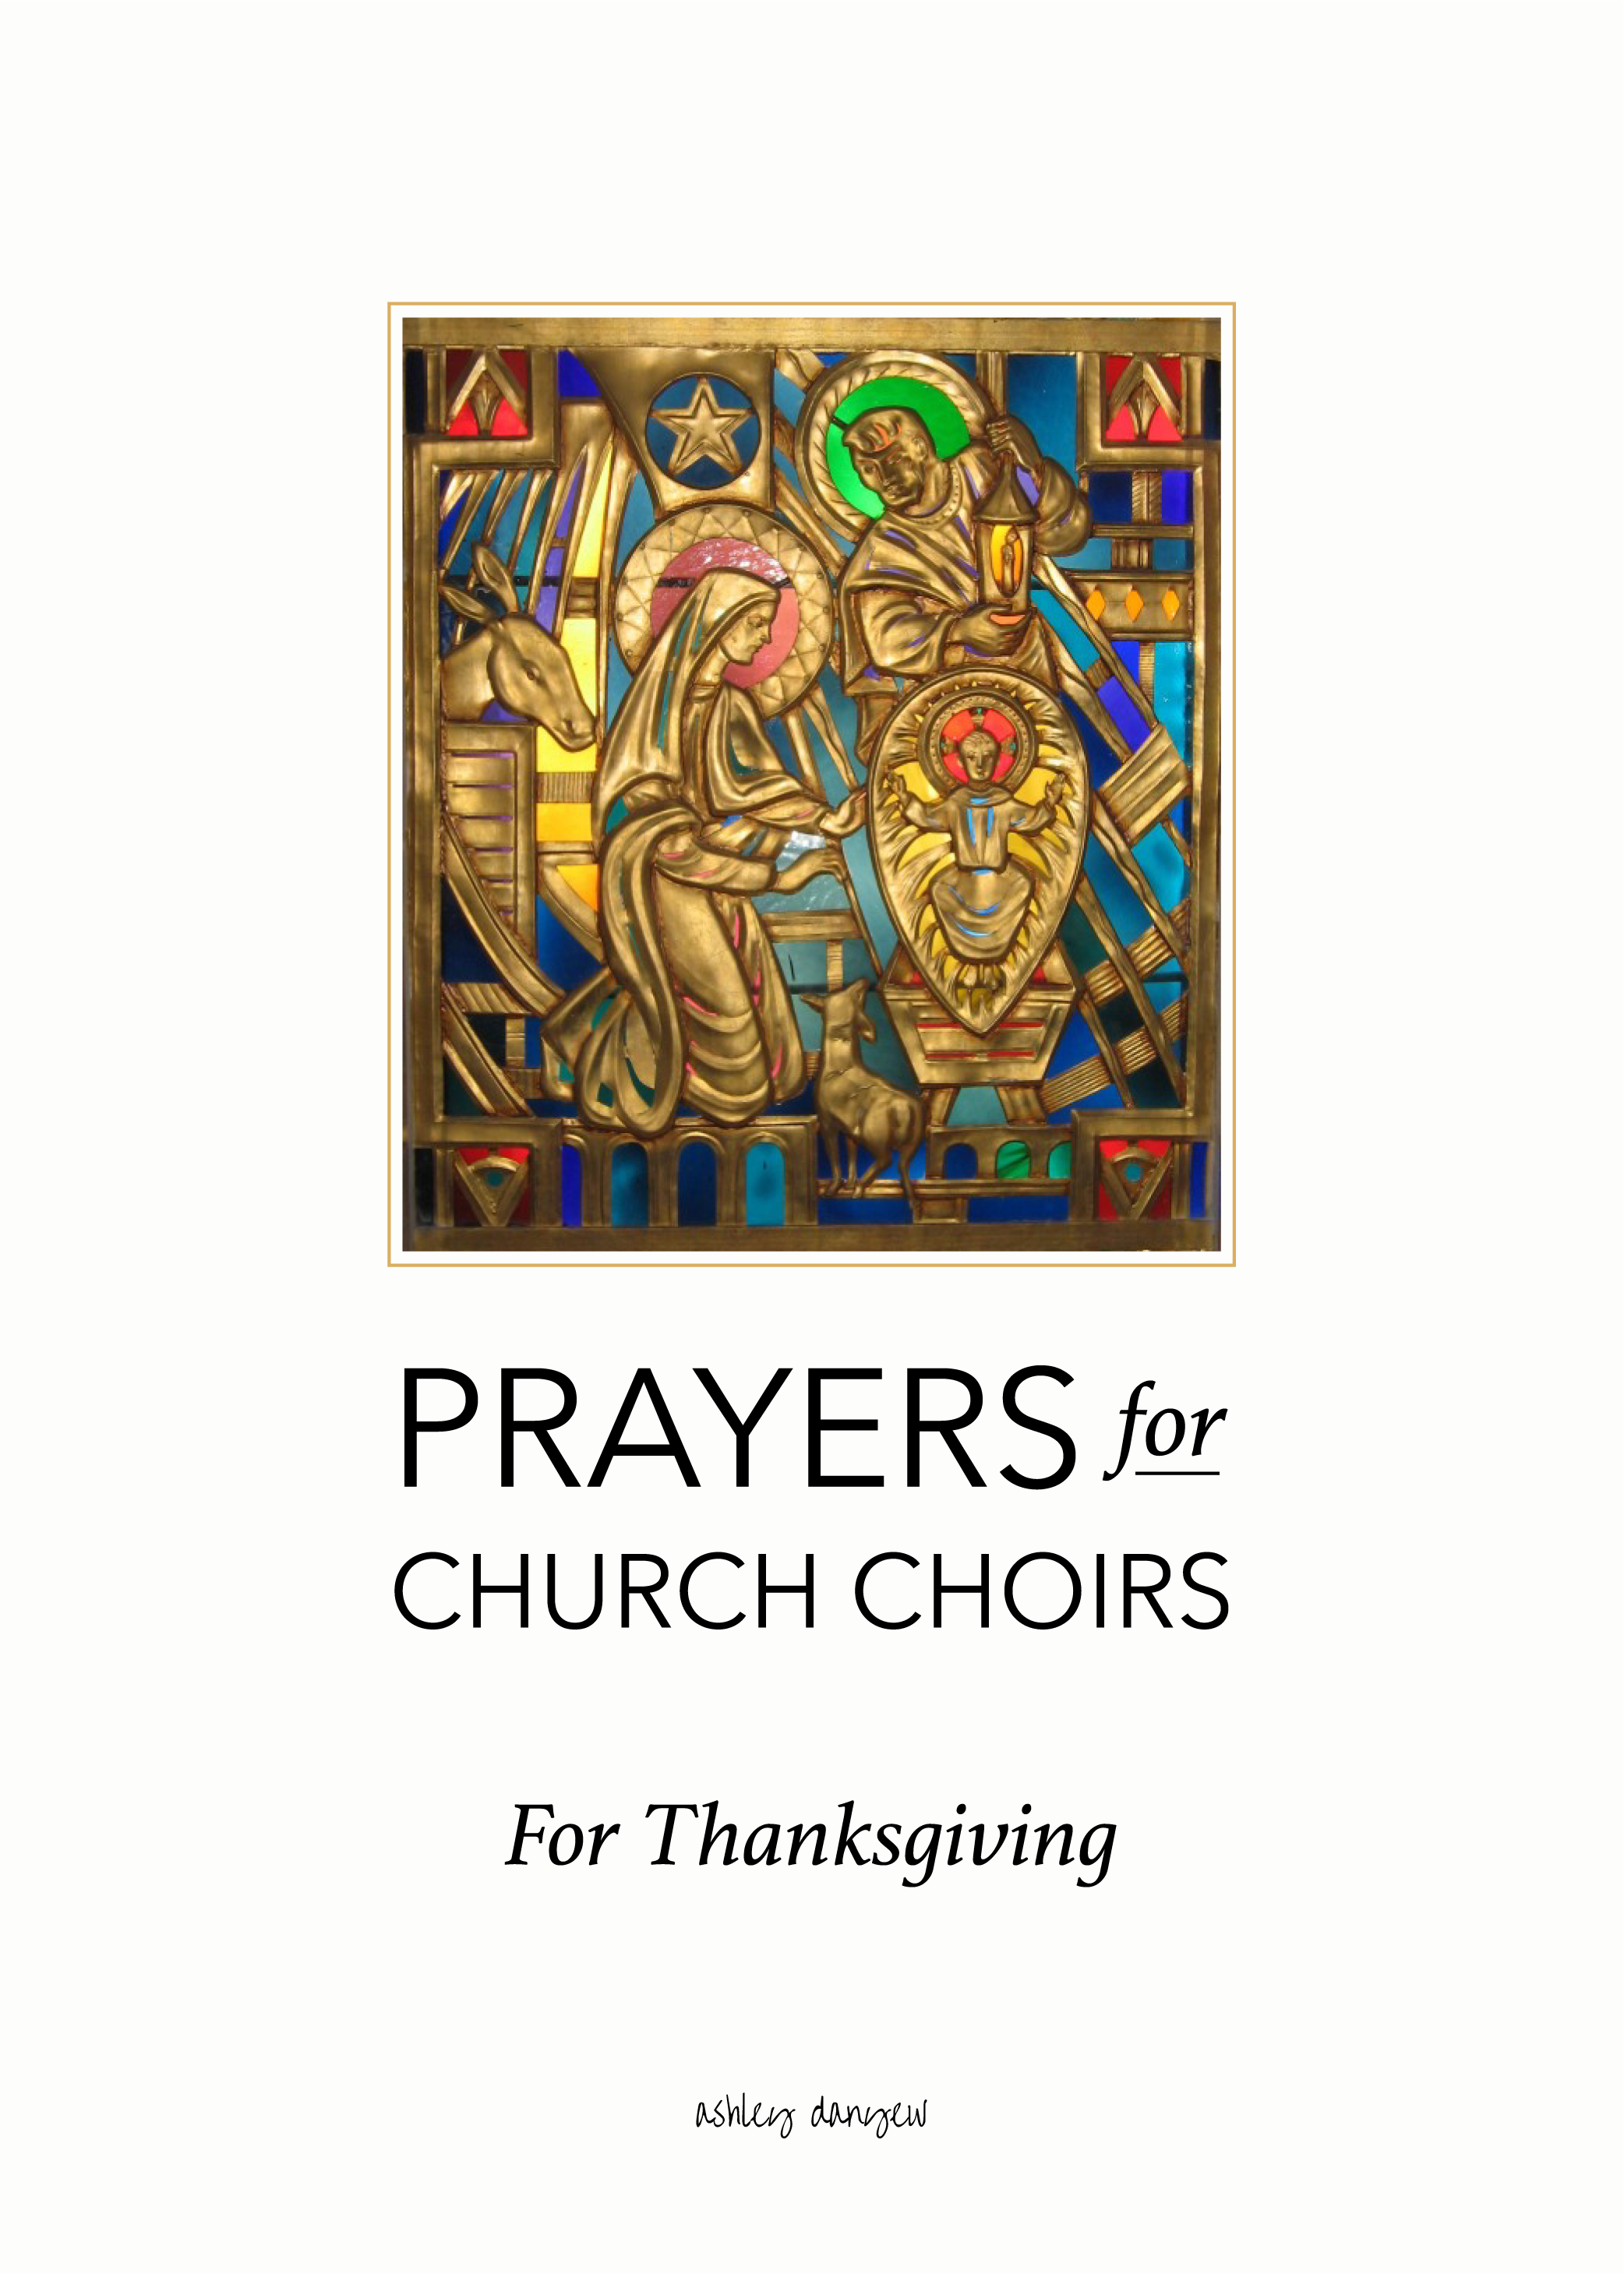 Prayers-for-Church-Choirs_Thanksgiving-12.png